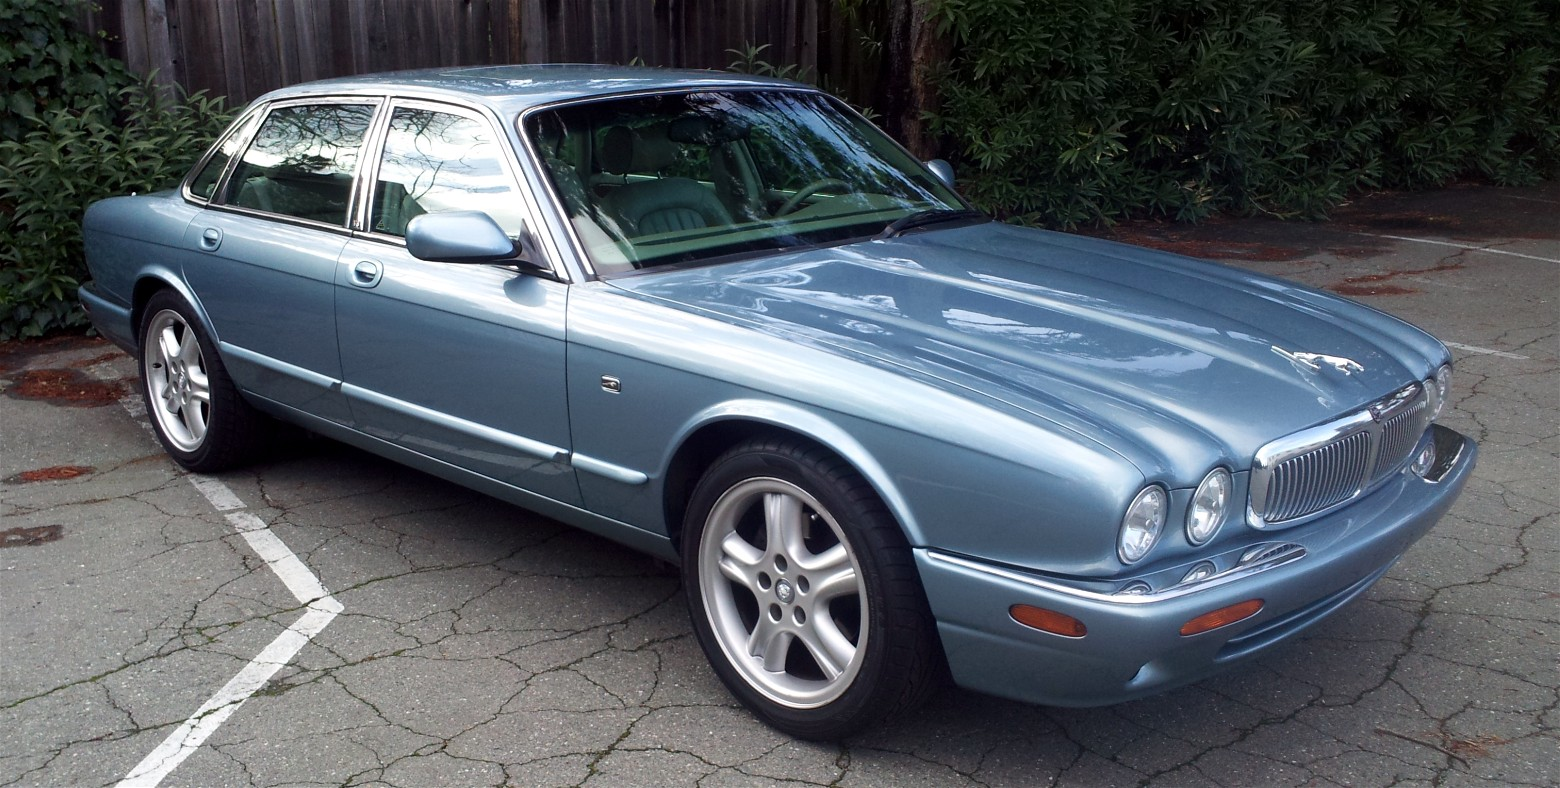 2002 Zircon Jaguar XJR  picture, mods, upgrades